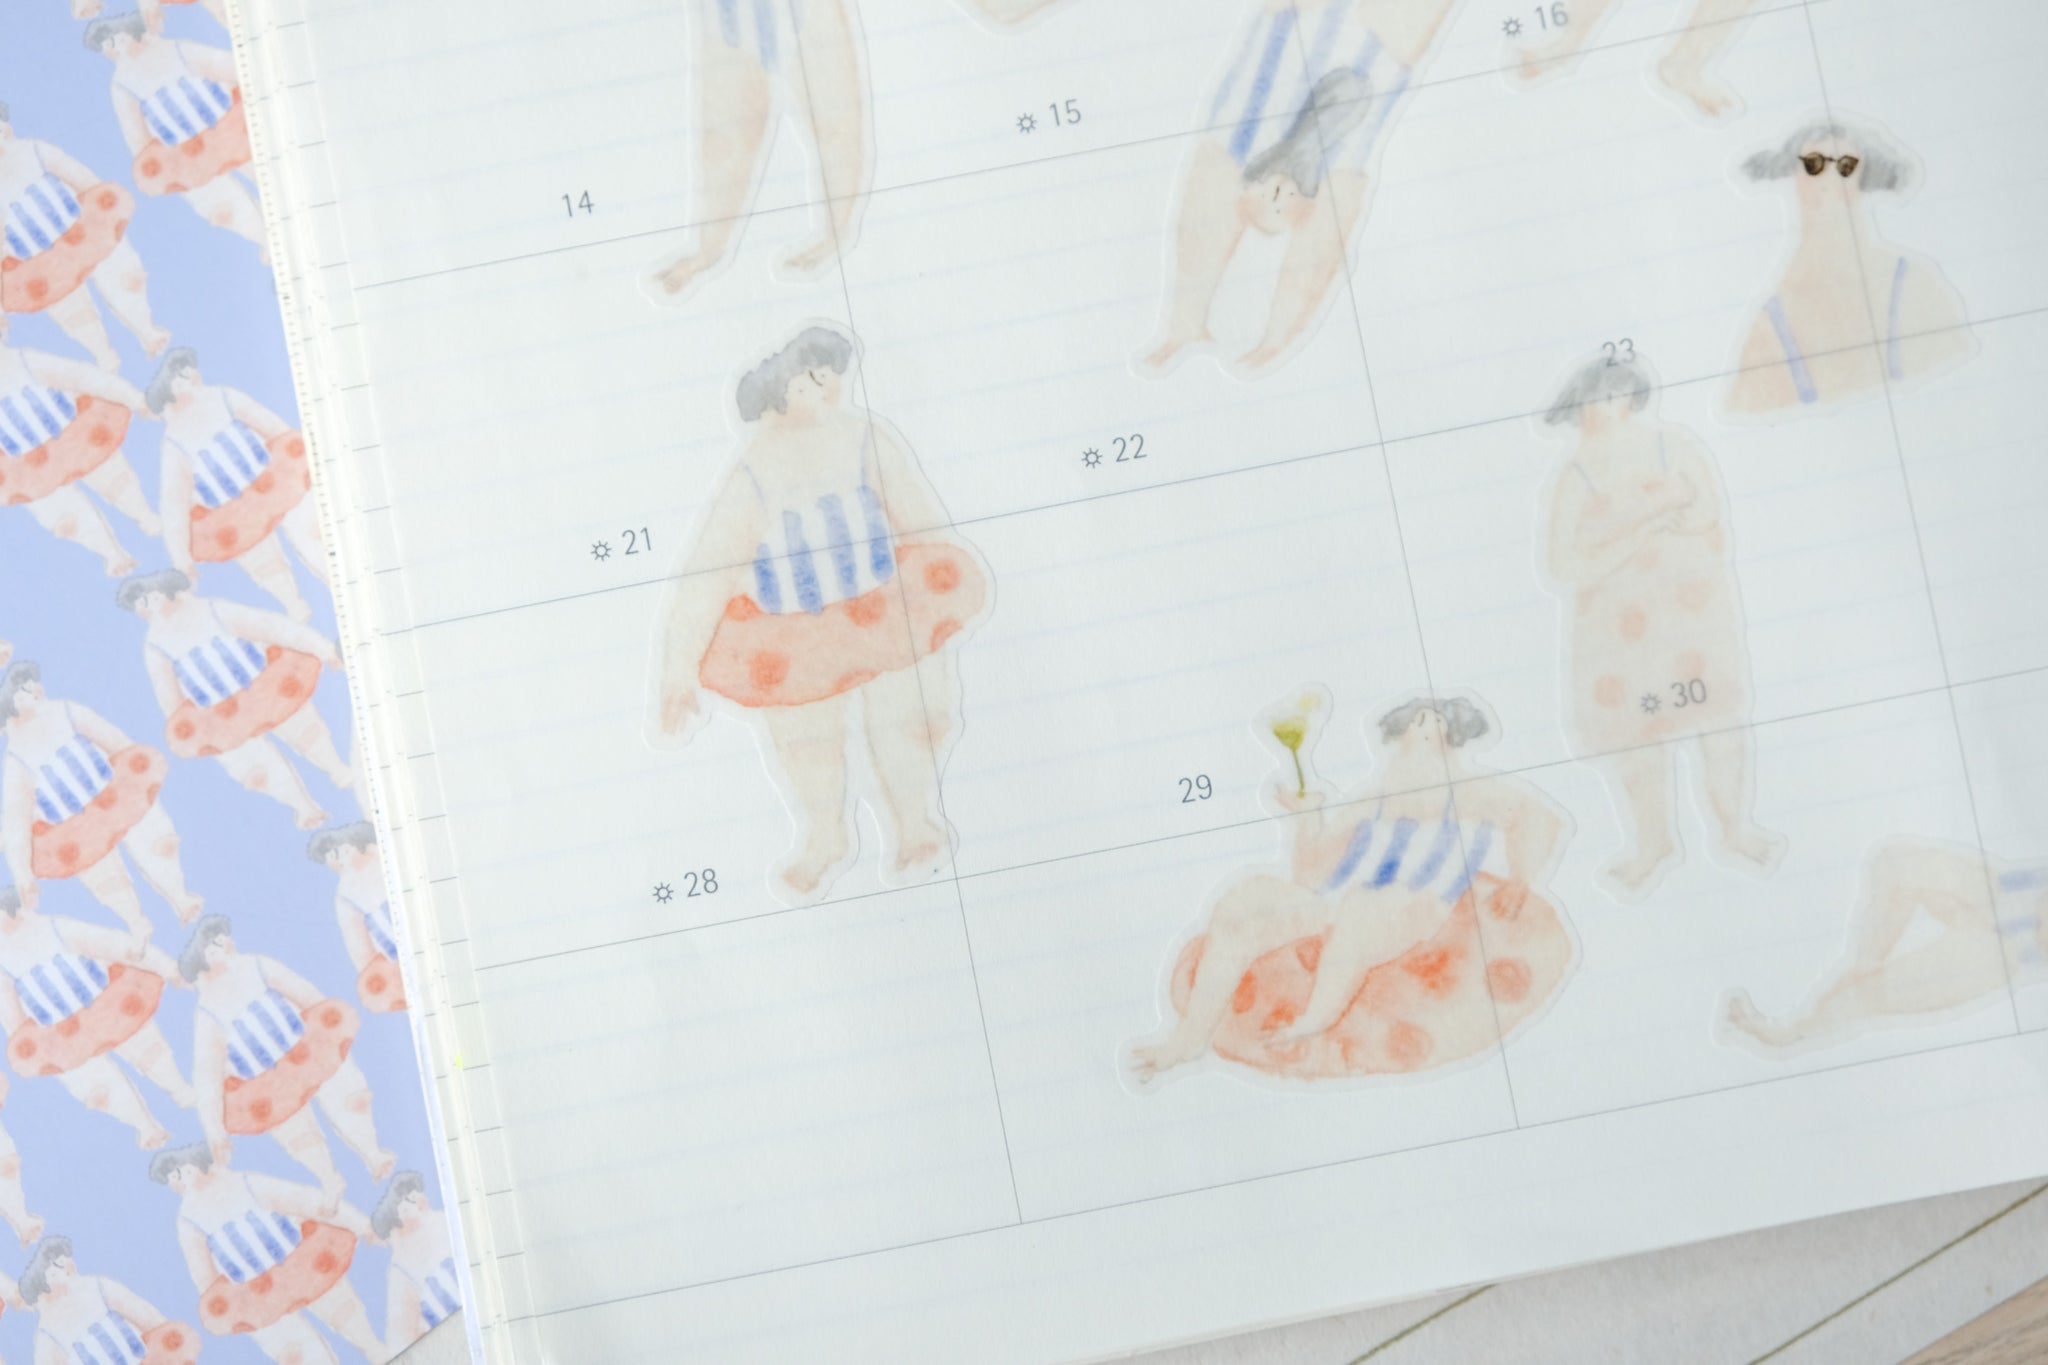 The Stripped Swimsuit - Sticker Sheet